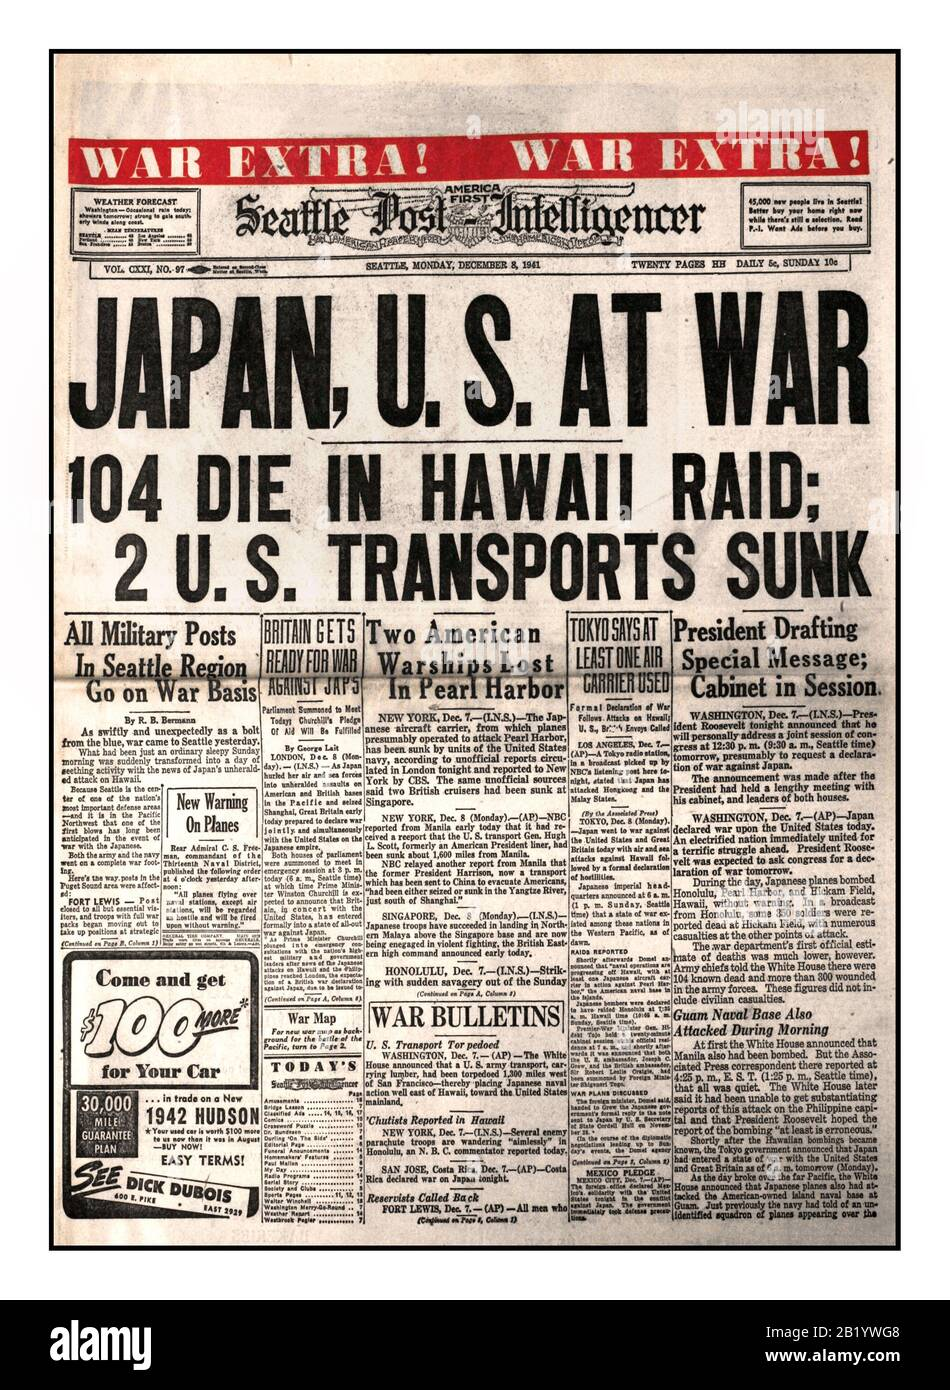 Archive Pearl Harbor attack Newspaper Headlines December 8th 1941 'JAPAN US AT WAR' 104 die in Hawaii raid 2 US transports sunk Seattle Post Intelligencer 'War Extra War Extra' The start of World War II for the USA and protagonist Japan Stock Photo